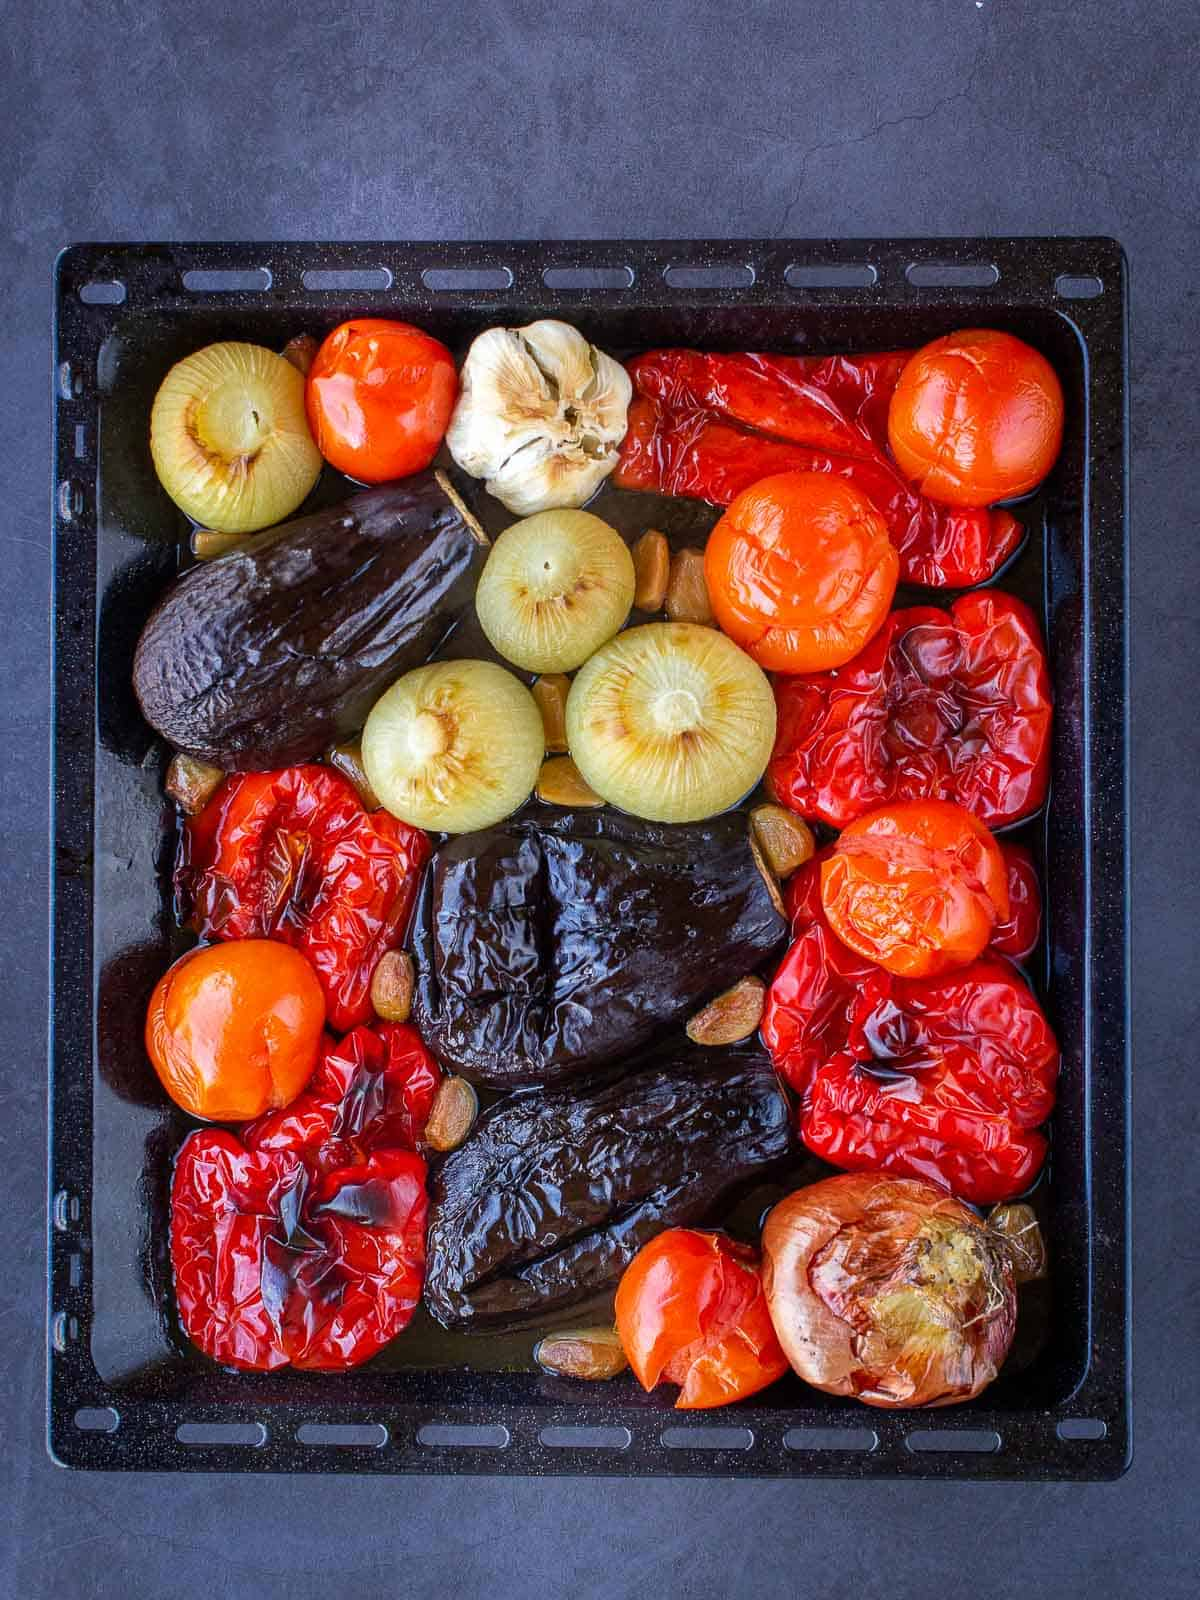 Escalivada Cooked Ingredients in Tray